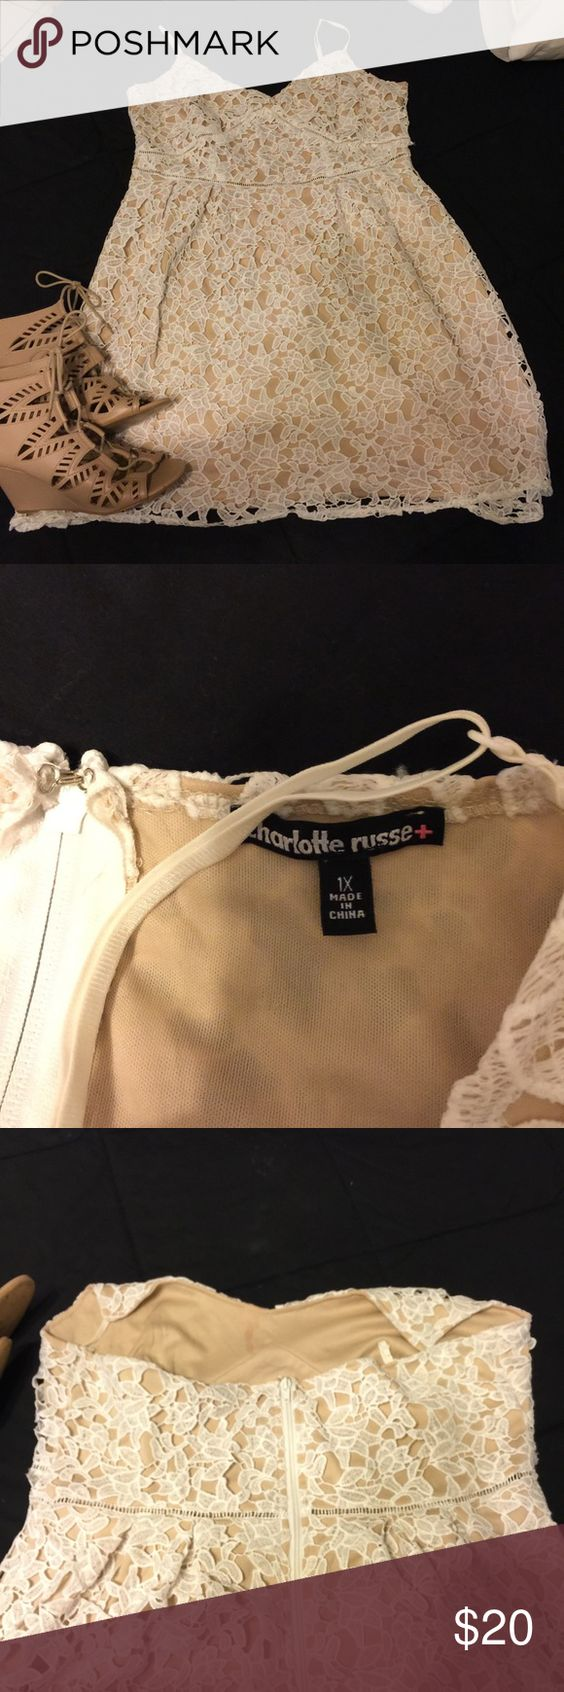 White and tan lace dress White over lay lace with stretchy tan underlay. Worn once for exactly 2 hours. Zipper up back. I'm a size 18/20 40C on top and it fits with a little room Charlotte Russe Dresses